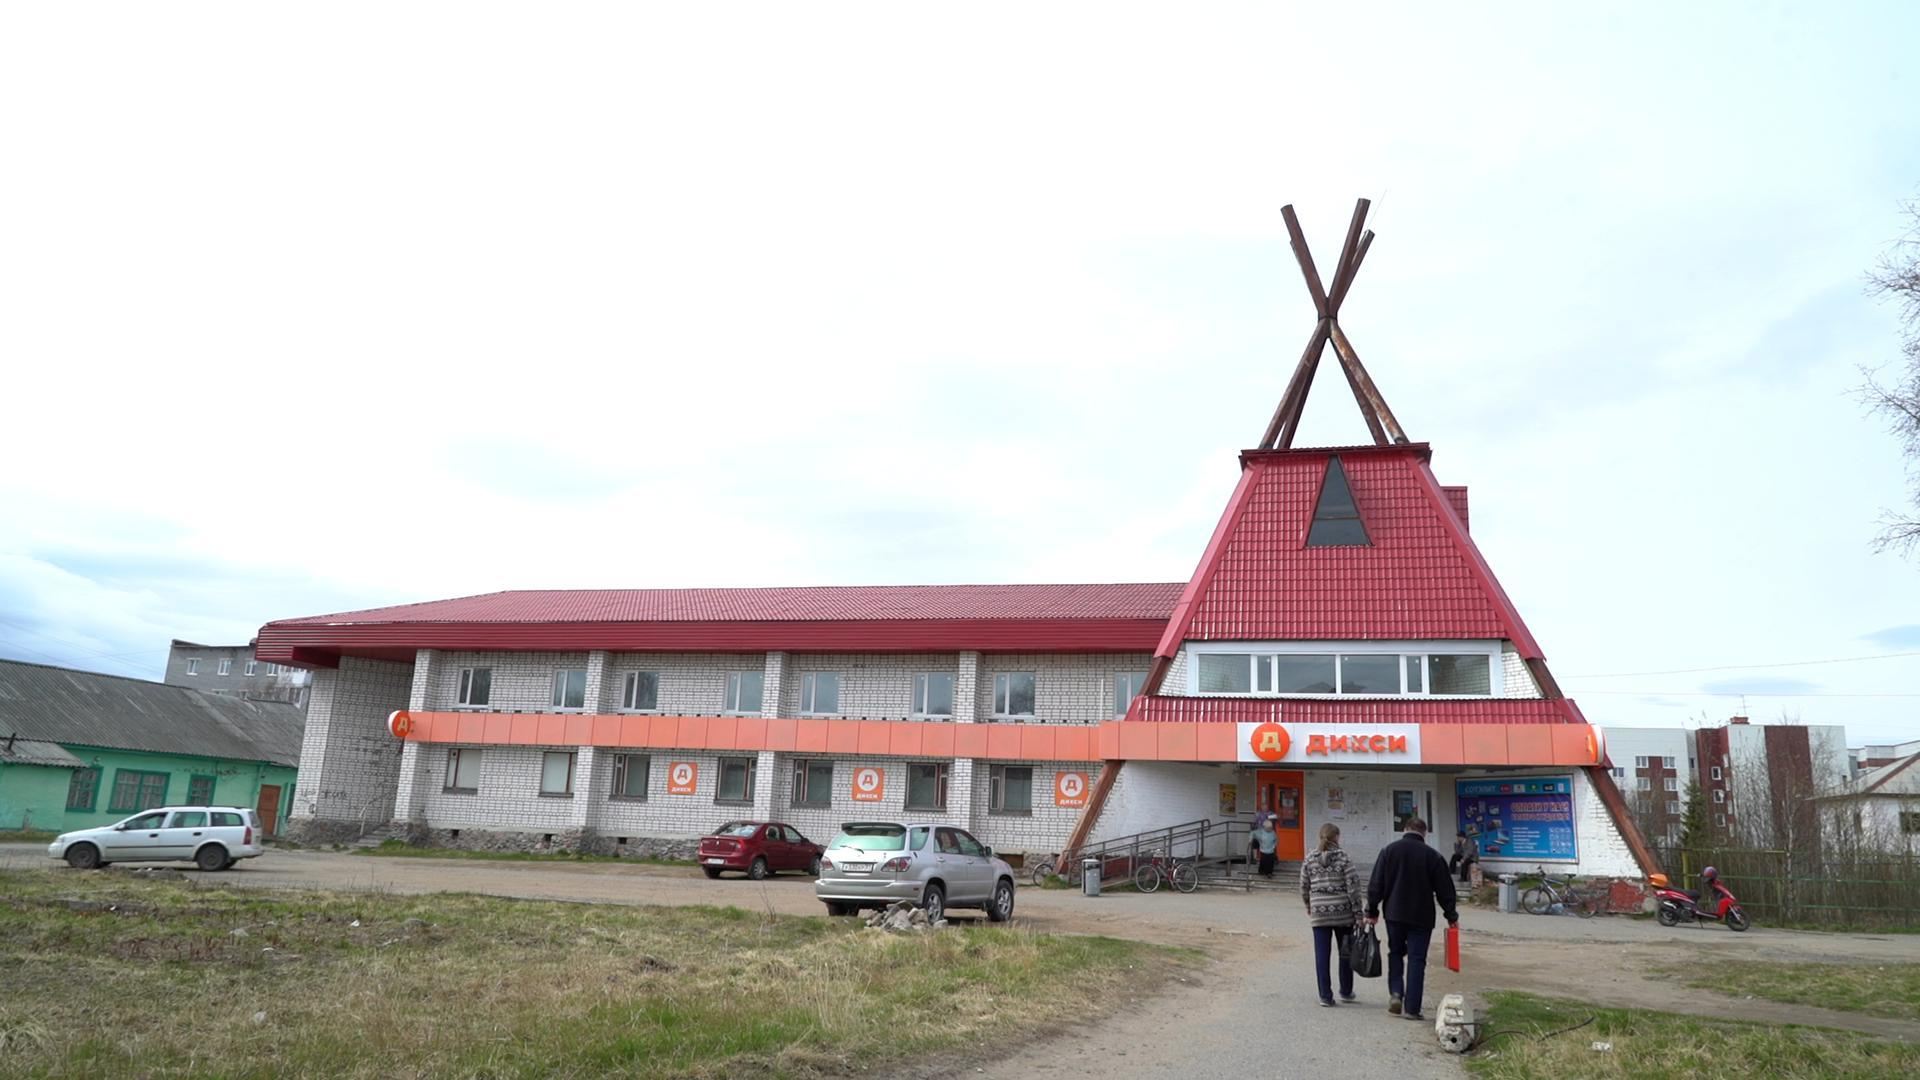 A grocery store in the biggest Sami community of Lovozero, about 200 kilometres east of Murmansk.